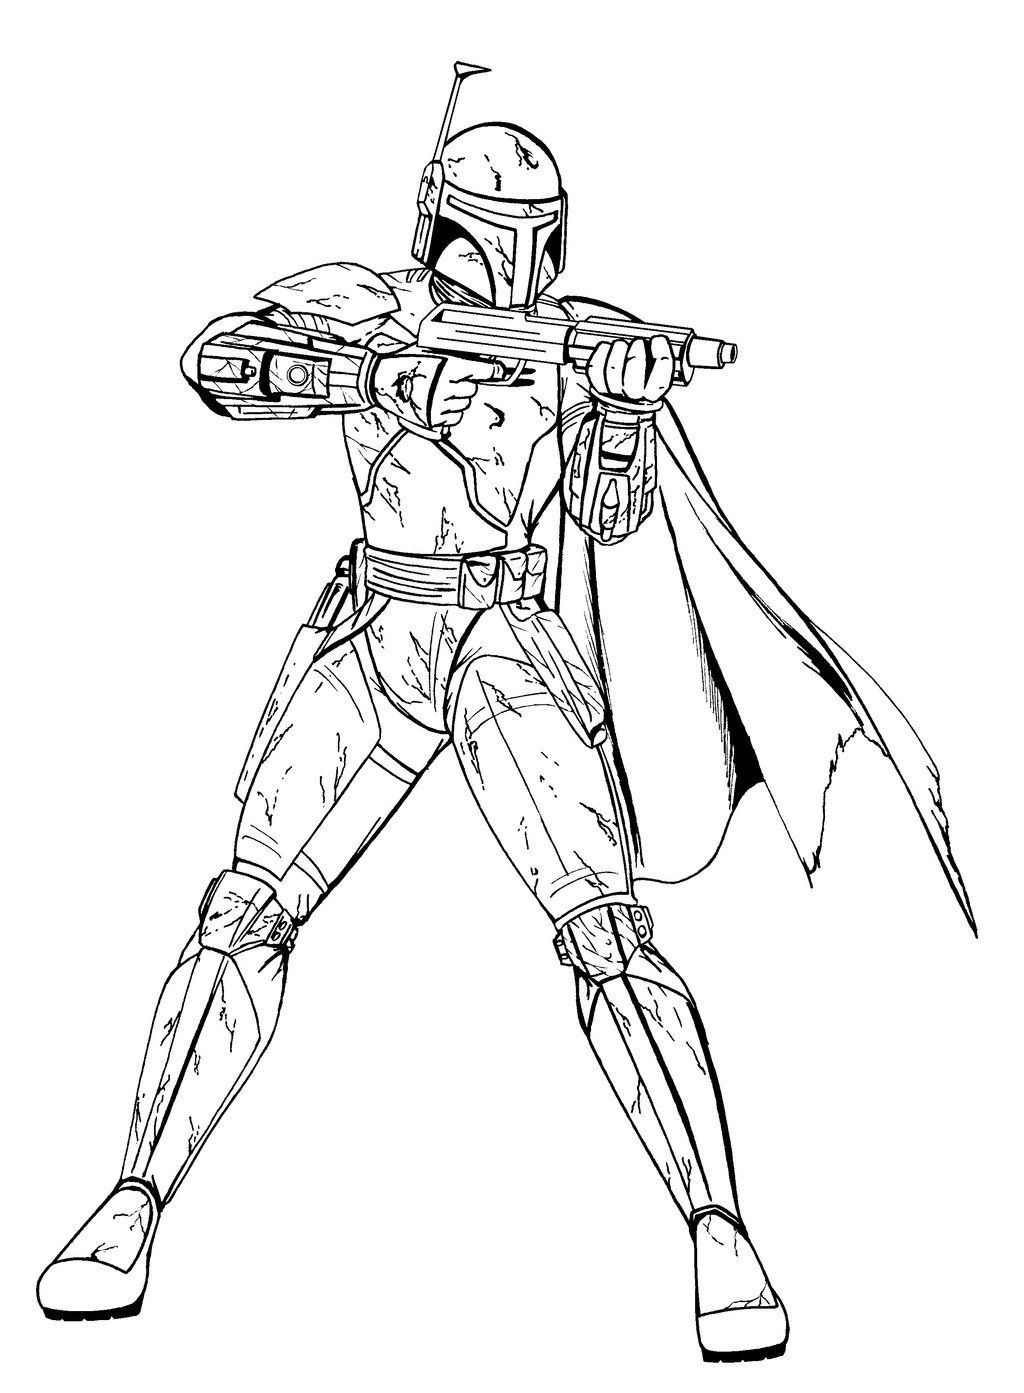 Star Wars Coloring Pages Ideas For Kids Star Wars Colors Star